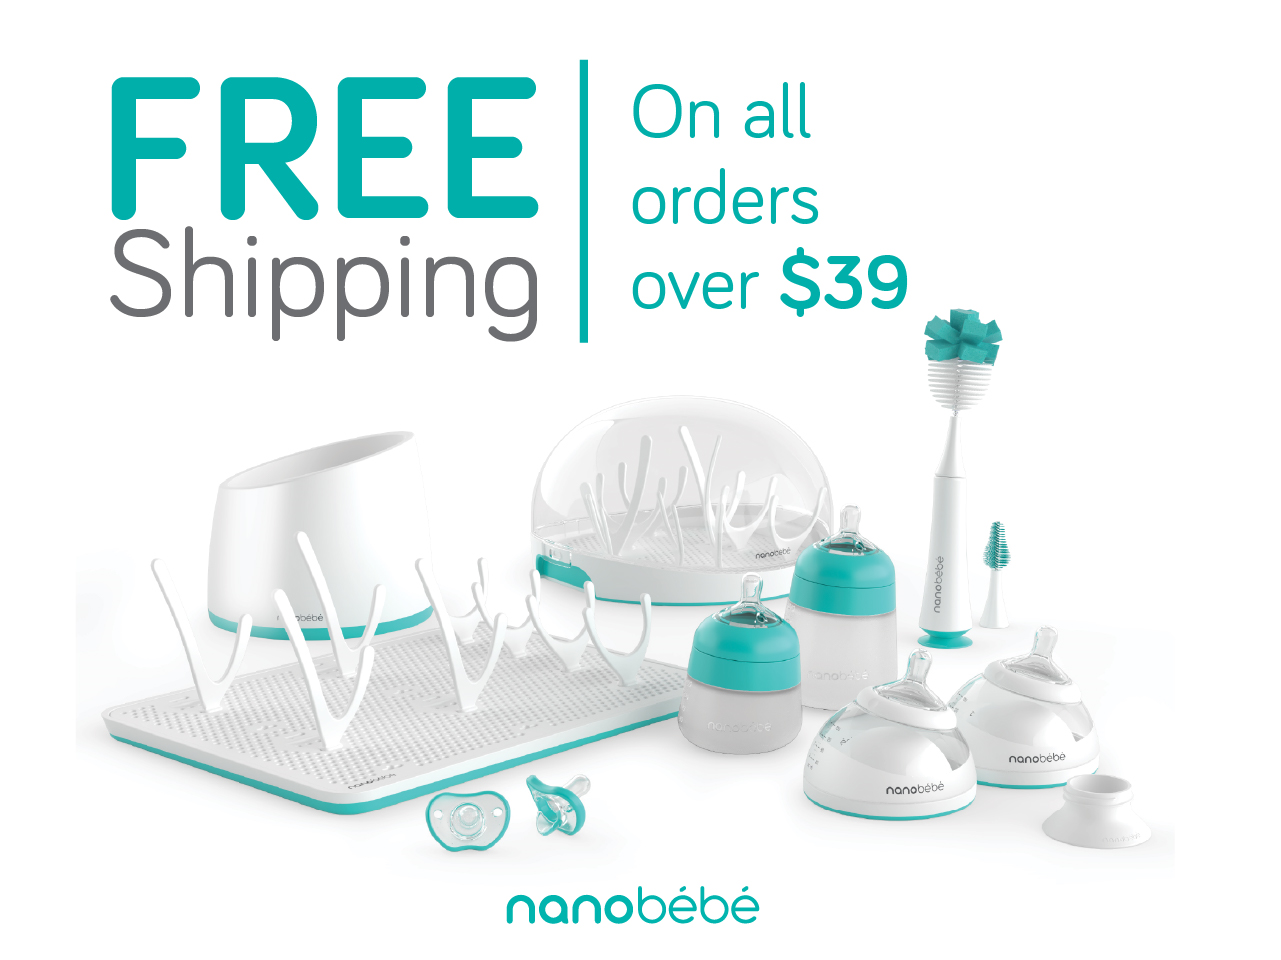 Free shipping on all Nanobébé orders over $39 - Ultimate Set shown